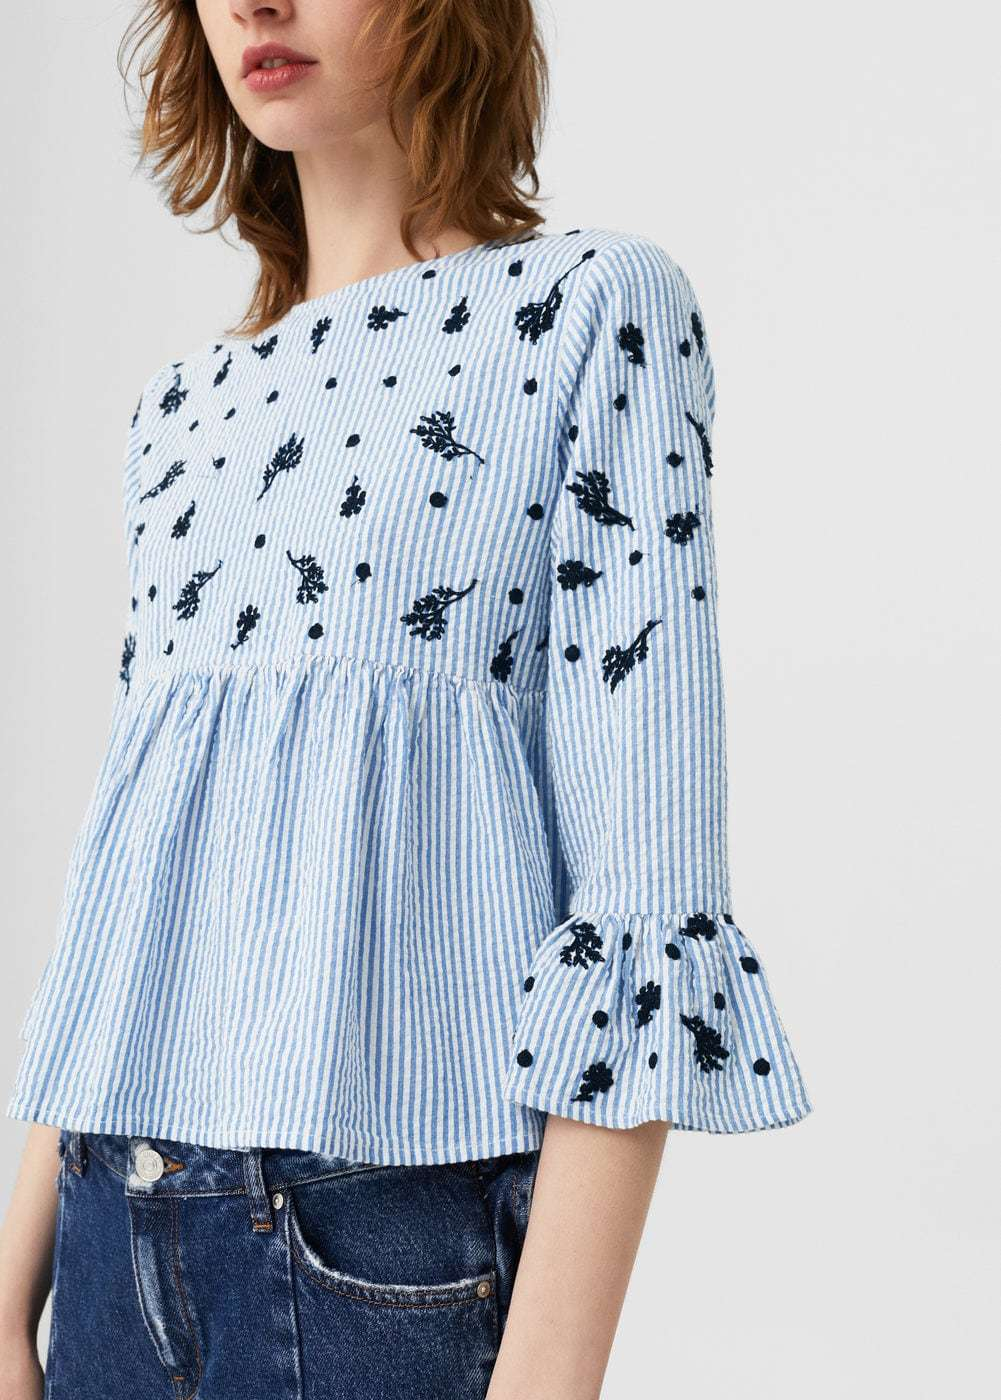 Cotton Fabric Striped Printing Blouse